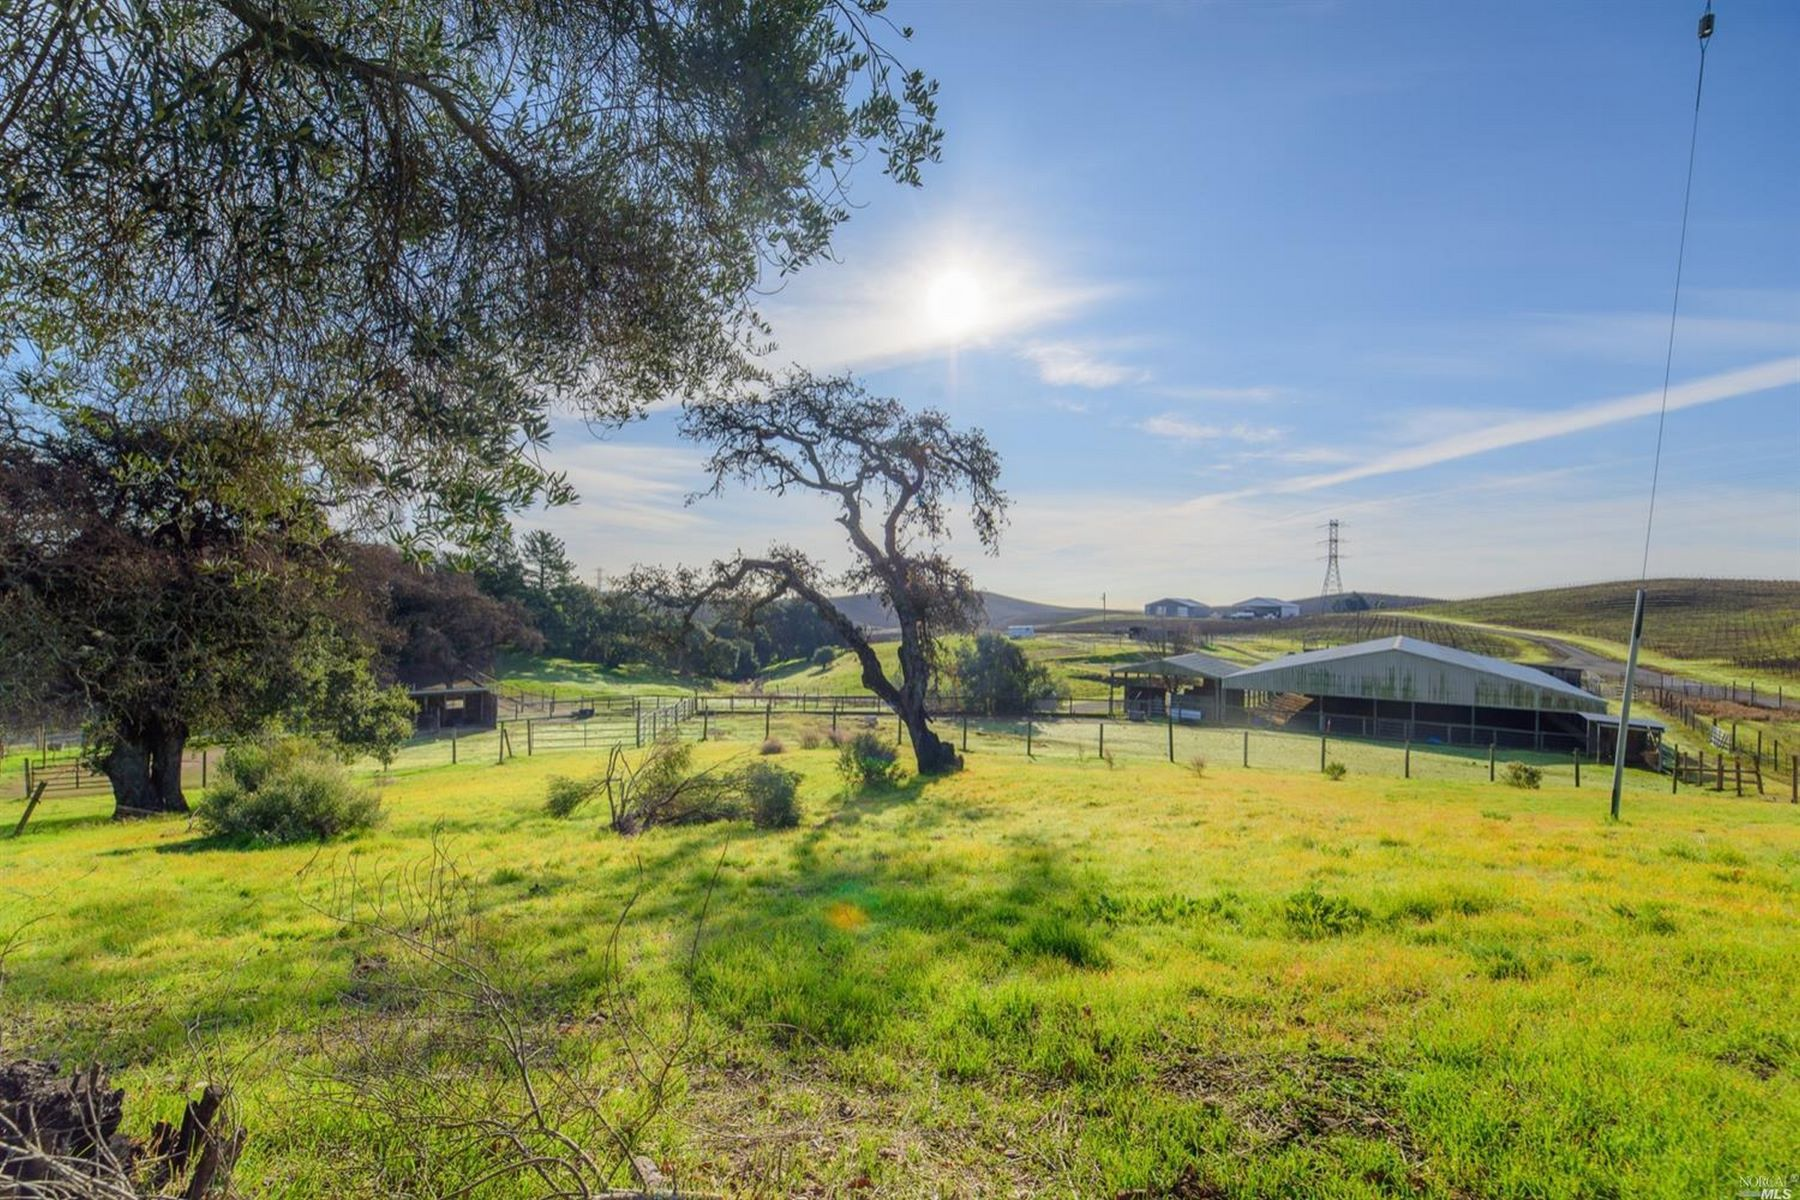 Single Family Homes for Sale at Equestrian/Horse Property in Napa Wine Country 5945 Haire Lane Napa, California 94558 United States